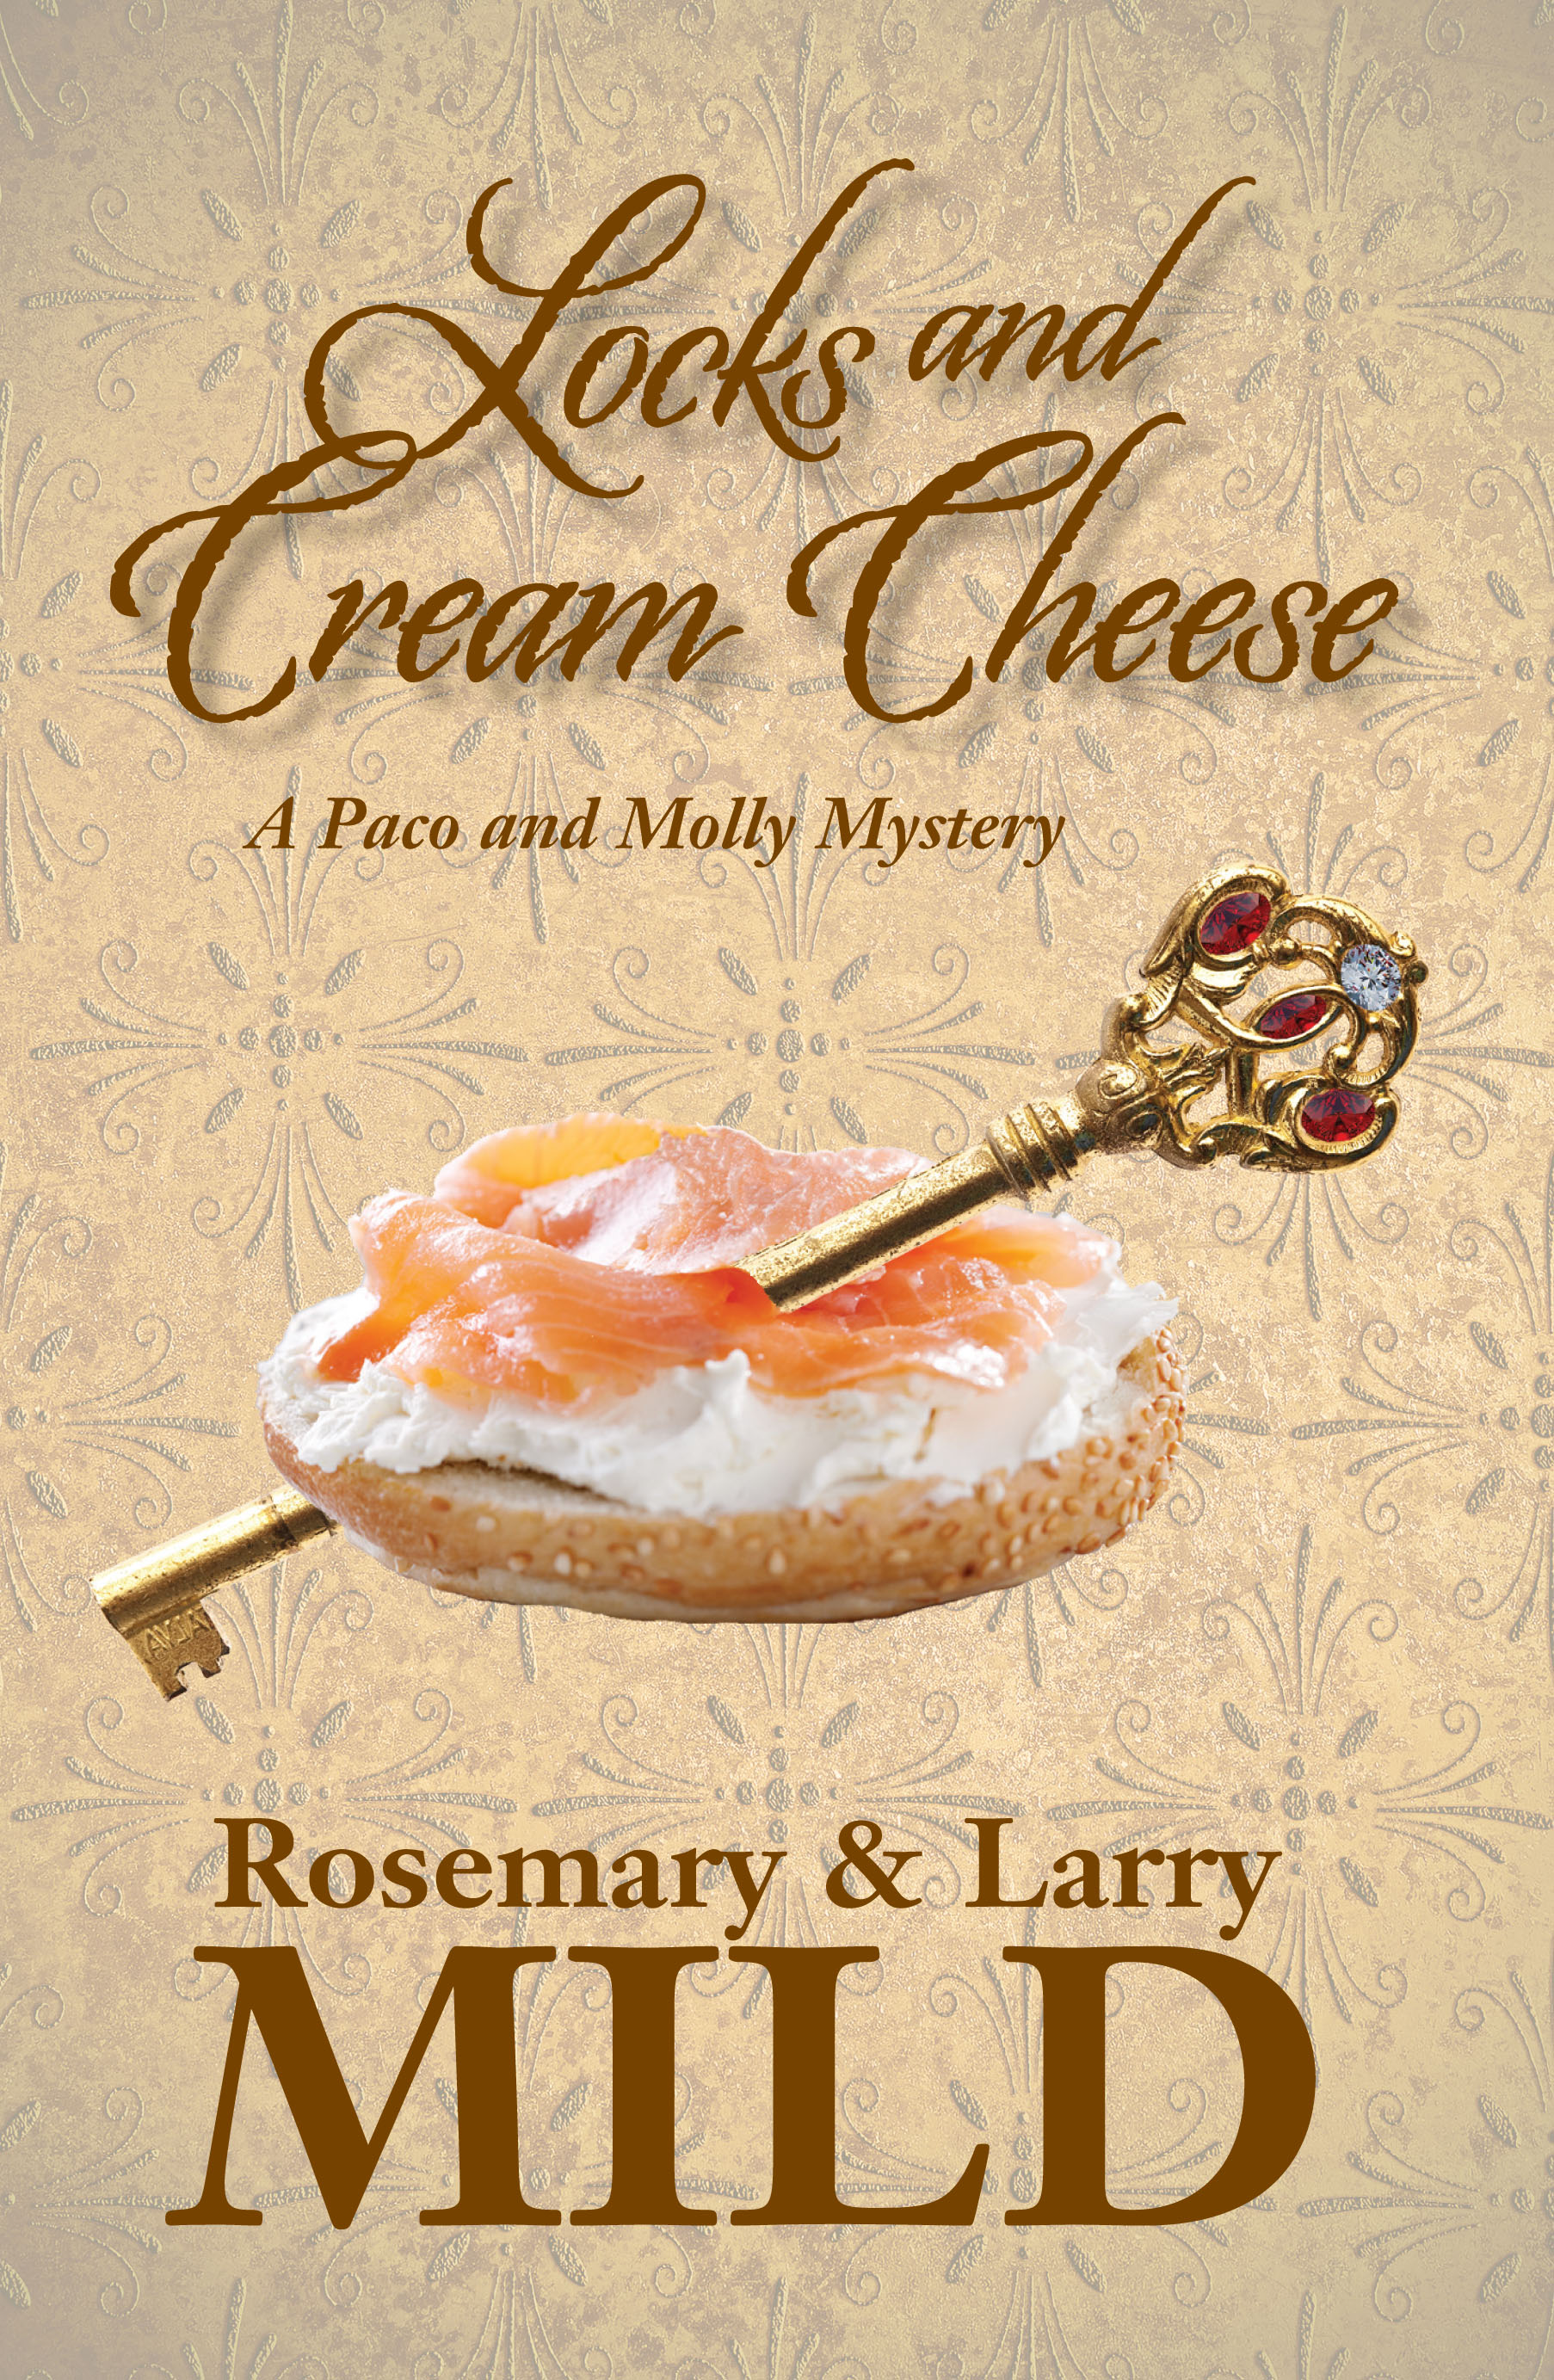 Locks and Cream Cheese by Rosemary and Larry Mild